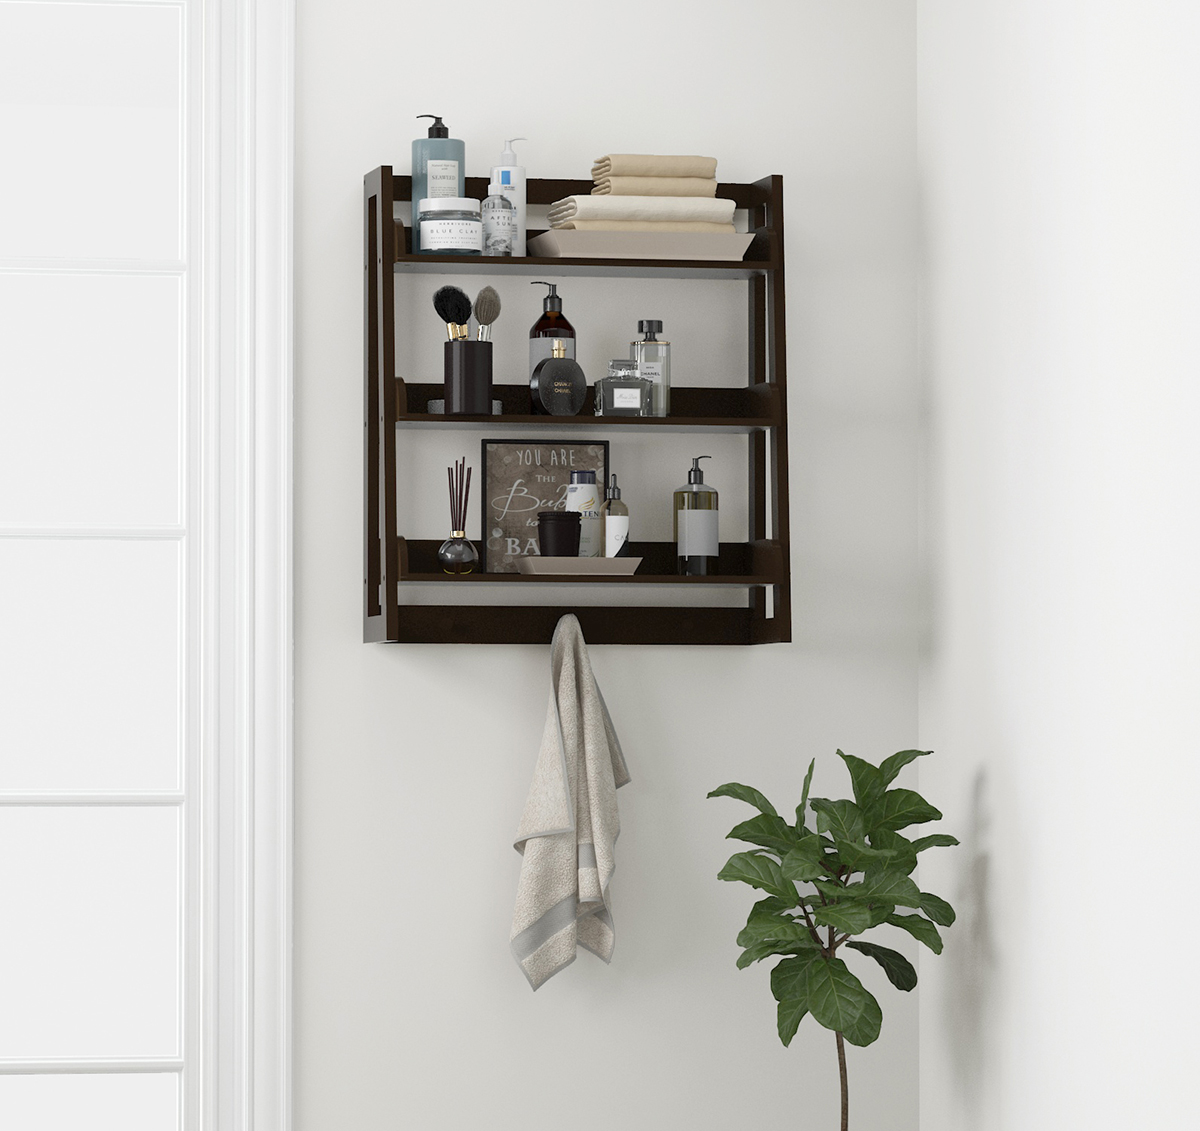 Spirich Bathroom Shelf Wall Mounted, Ladder Wall Shelf, Espresso